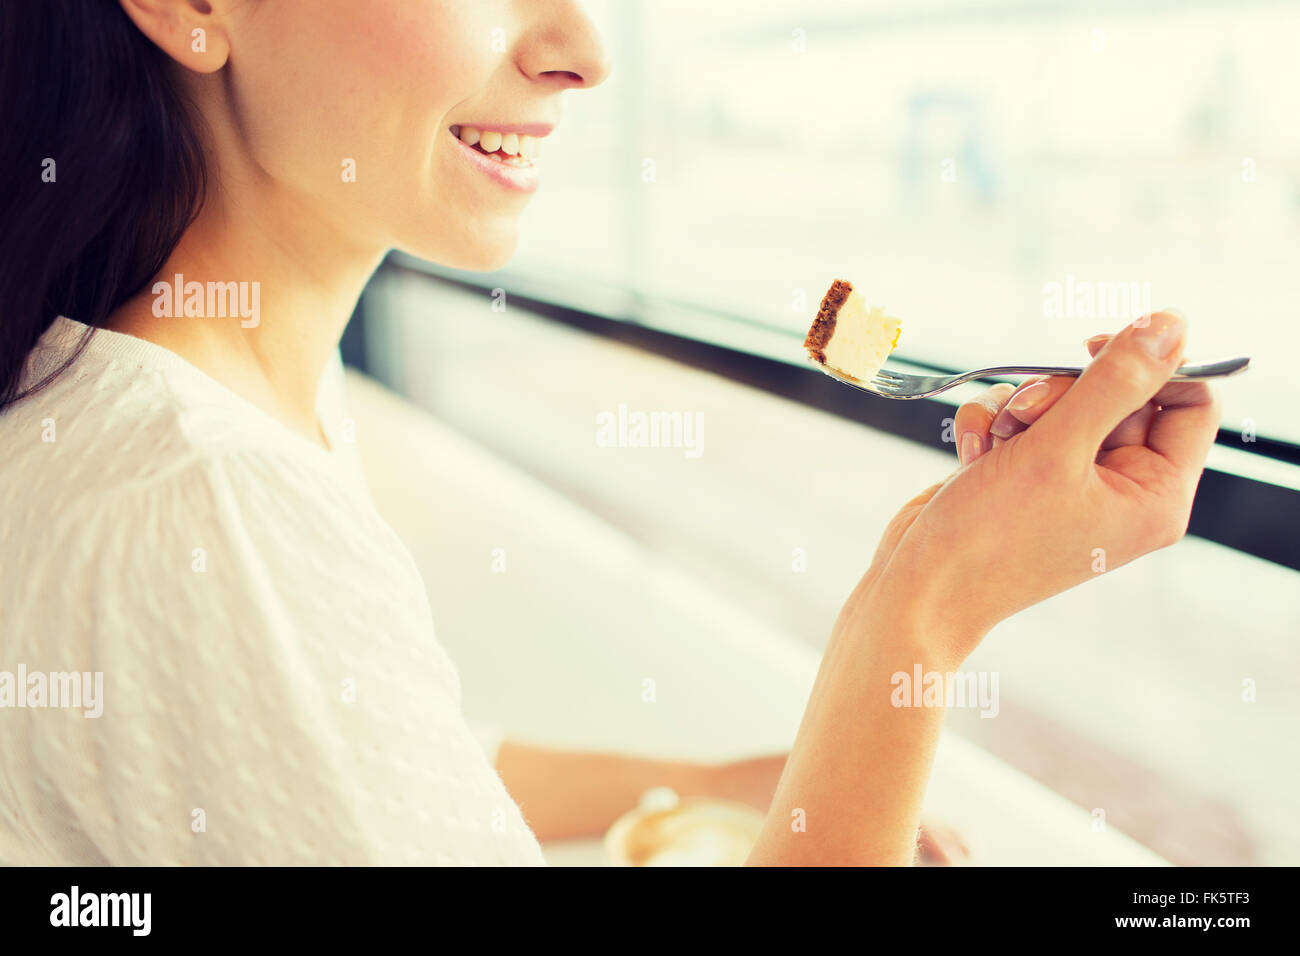 close up of woman eating cake at cafe or home - Stock Image